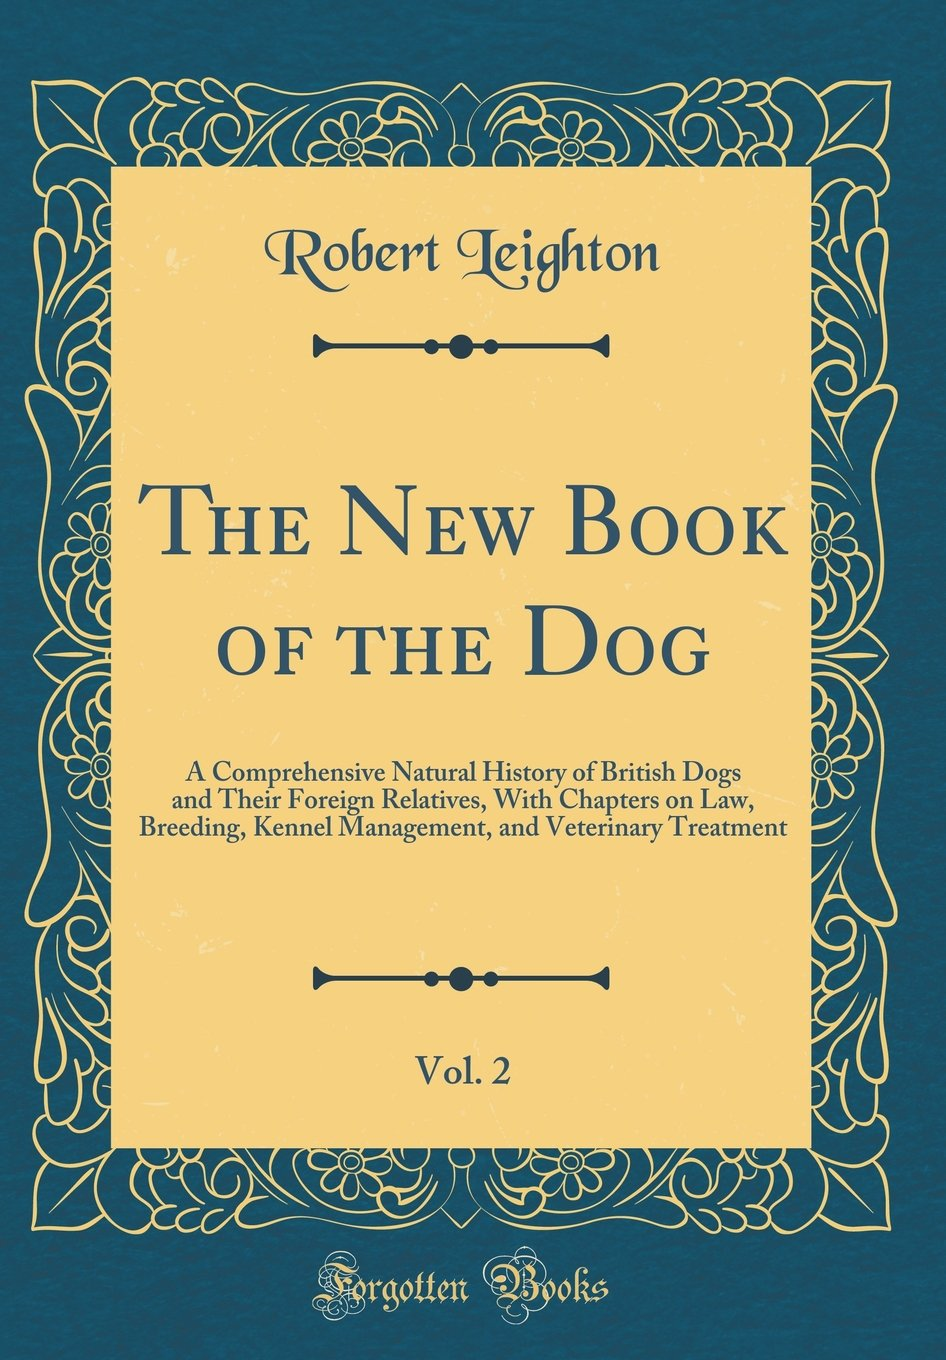 The New Book of the Dog, Vol. 2: A Comprehensive Natural History of British Dogs and Their Foreign Relatives, with Chapters on Law, Breeding, Kennel ... and Veterinary Treatment (Classic Reprint) ebook